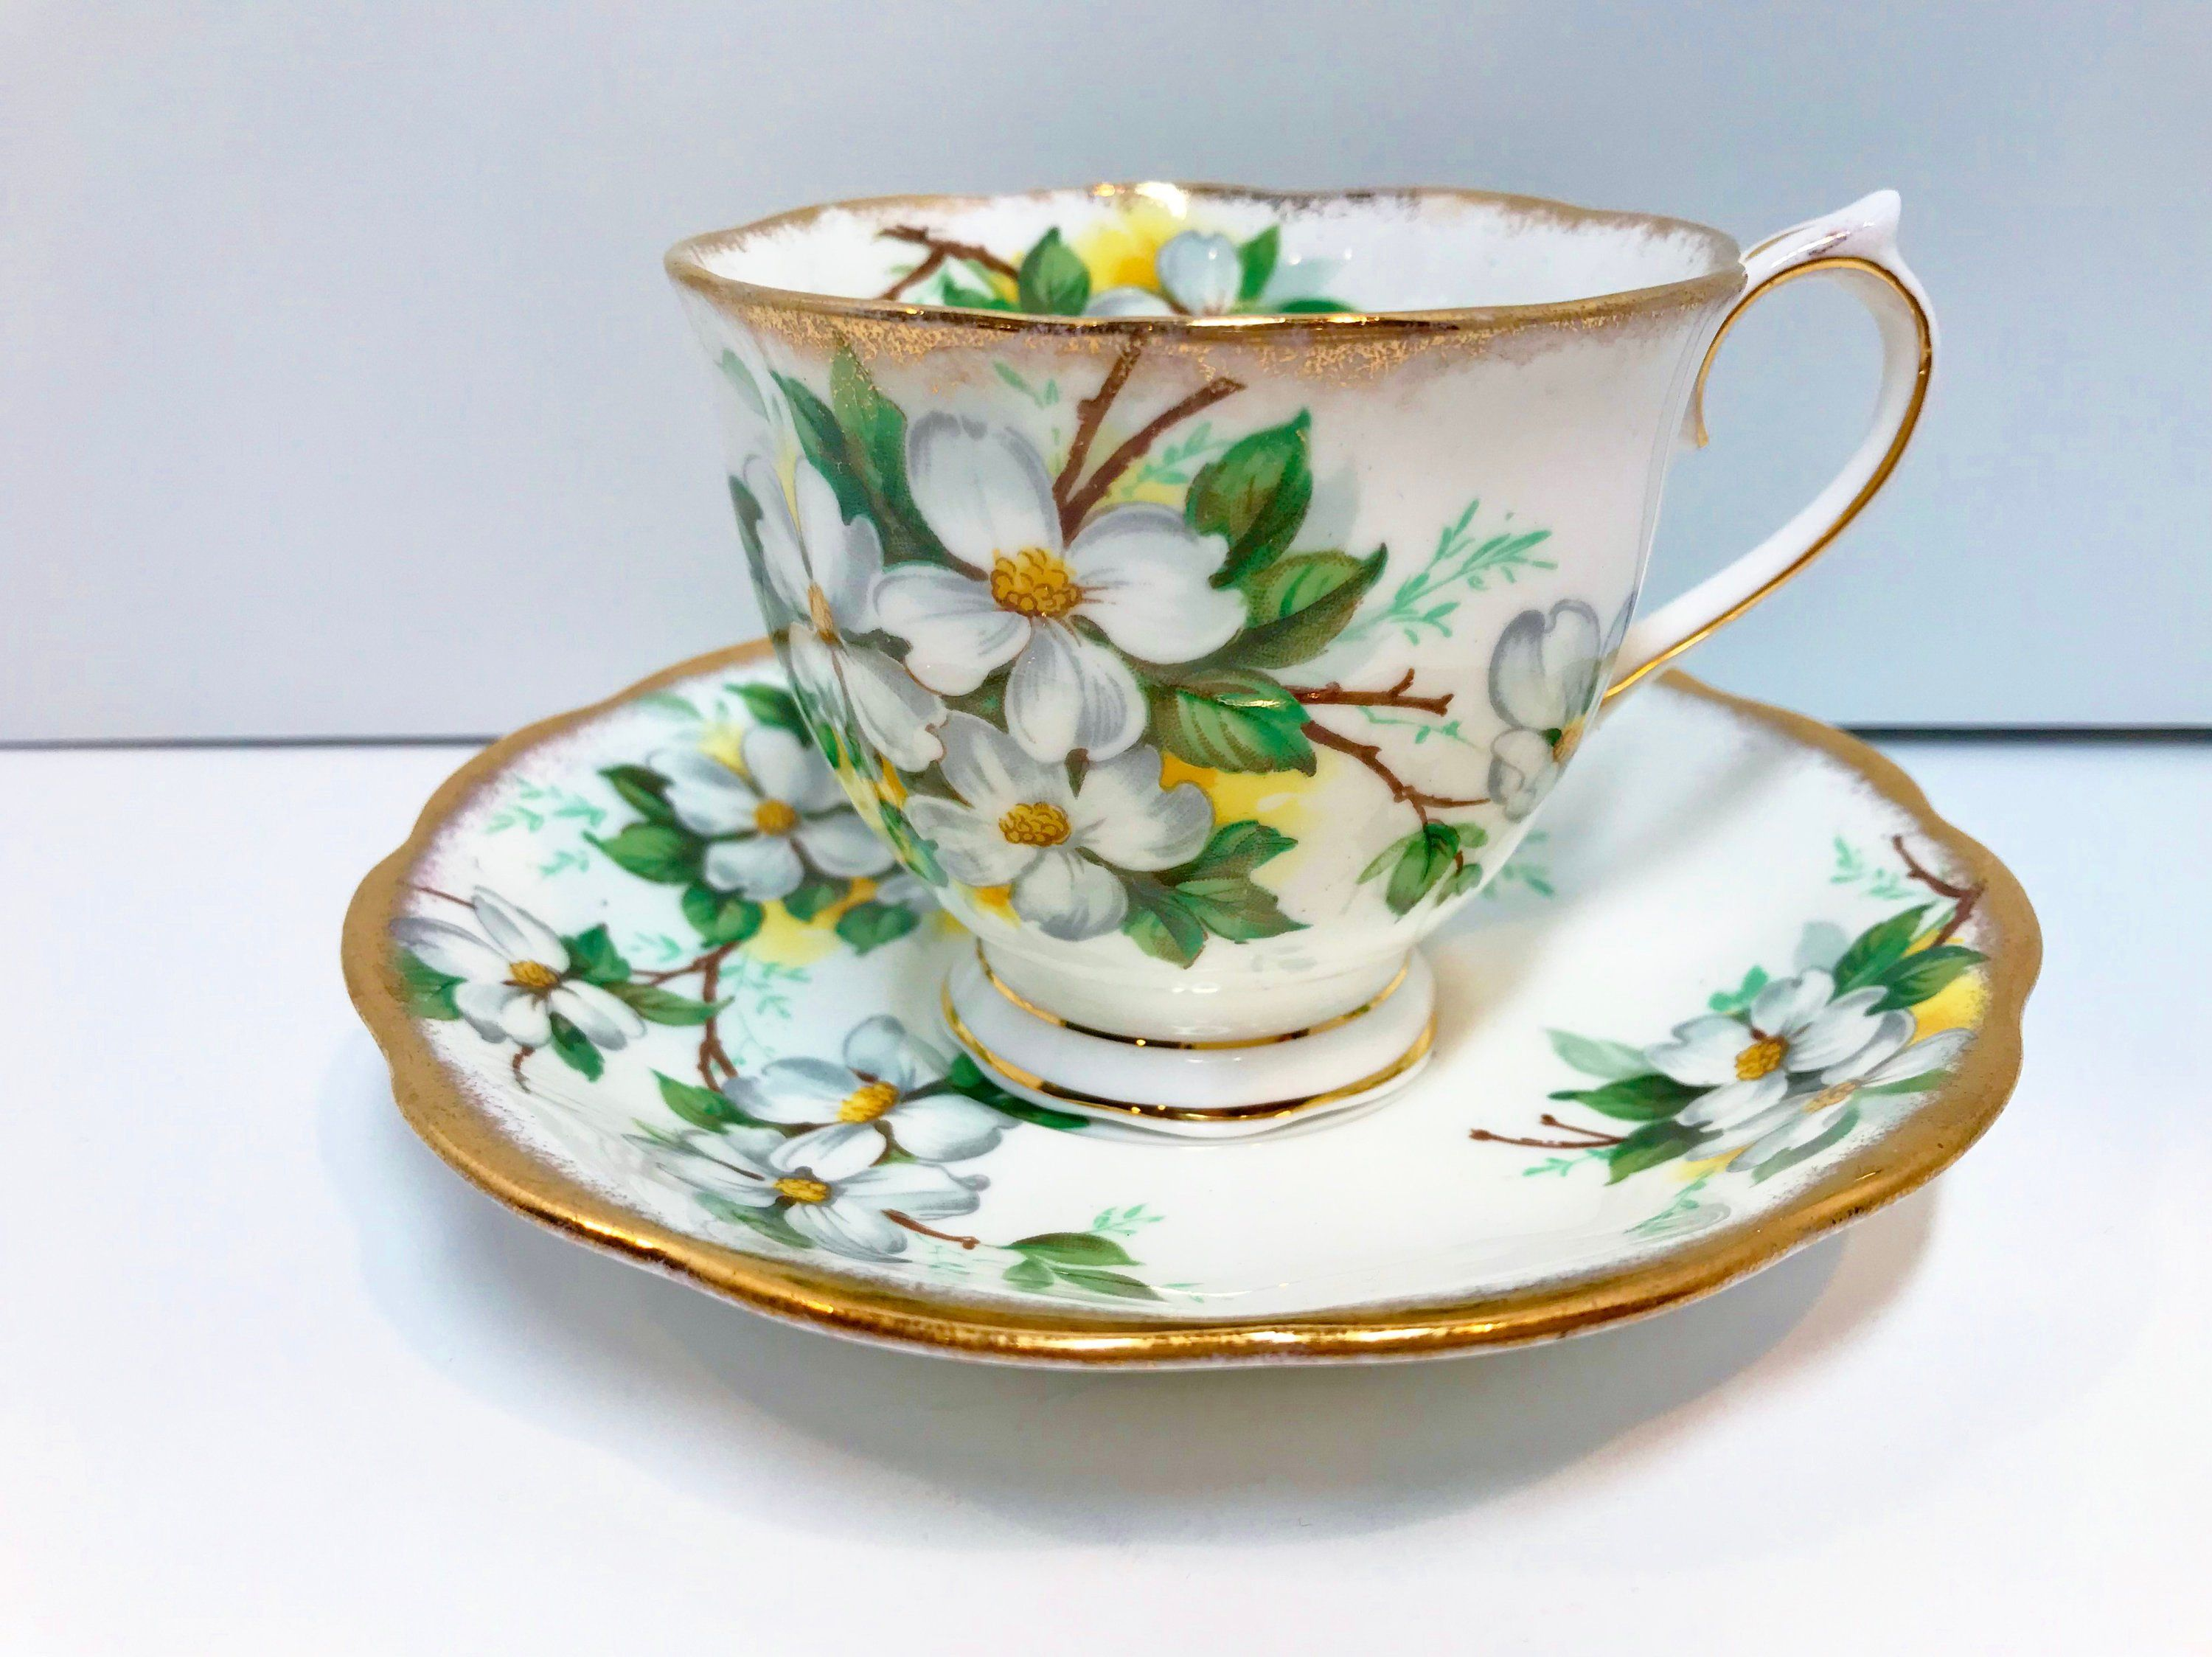 White Dogwood by Royal Albert Tea Cup and Saucer, Antique Teacup, Antique Tea Cups Vintage, English Bone China Cups, Floral Cups #teacups